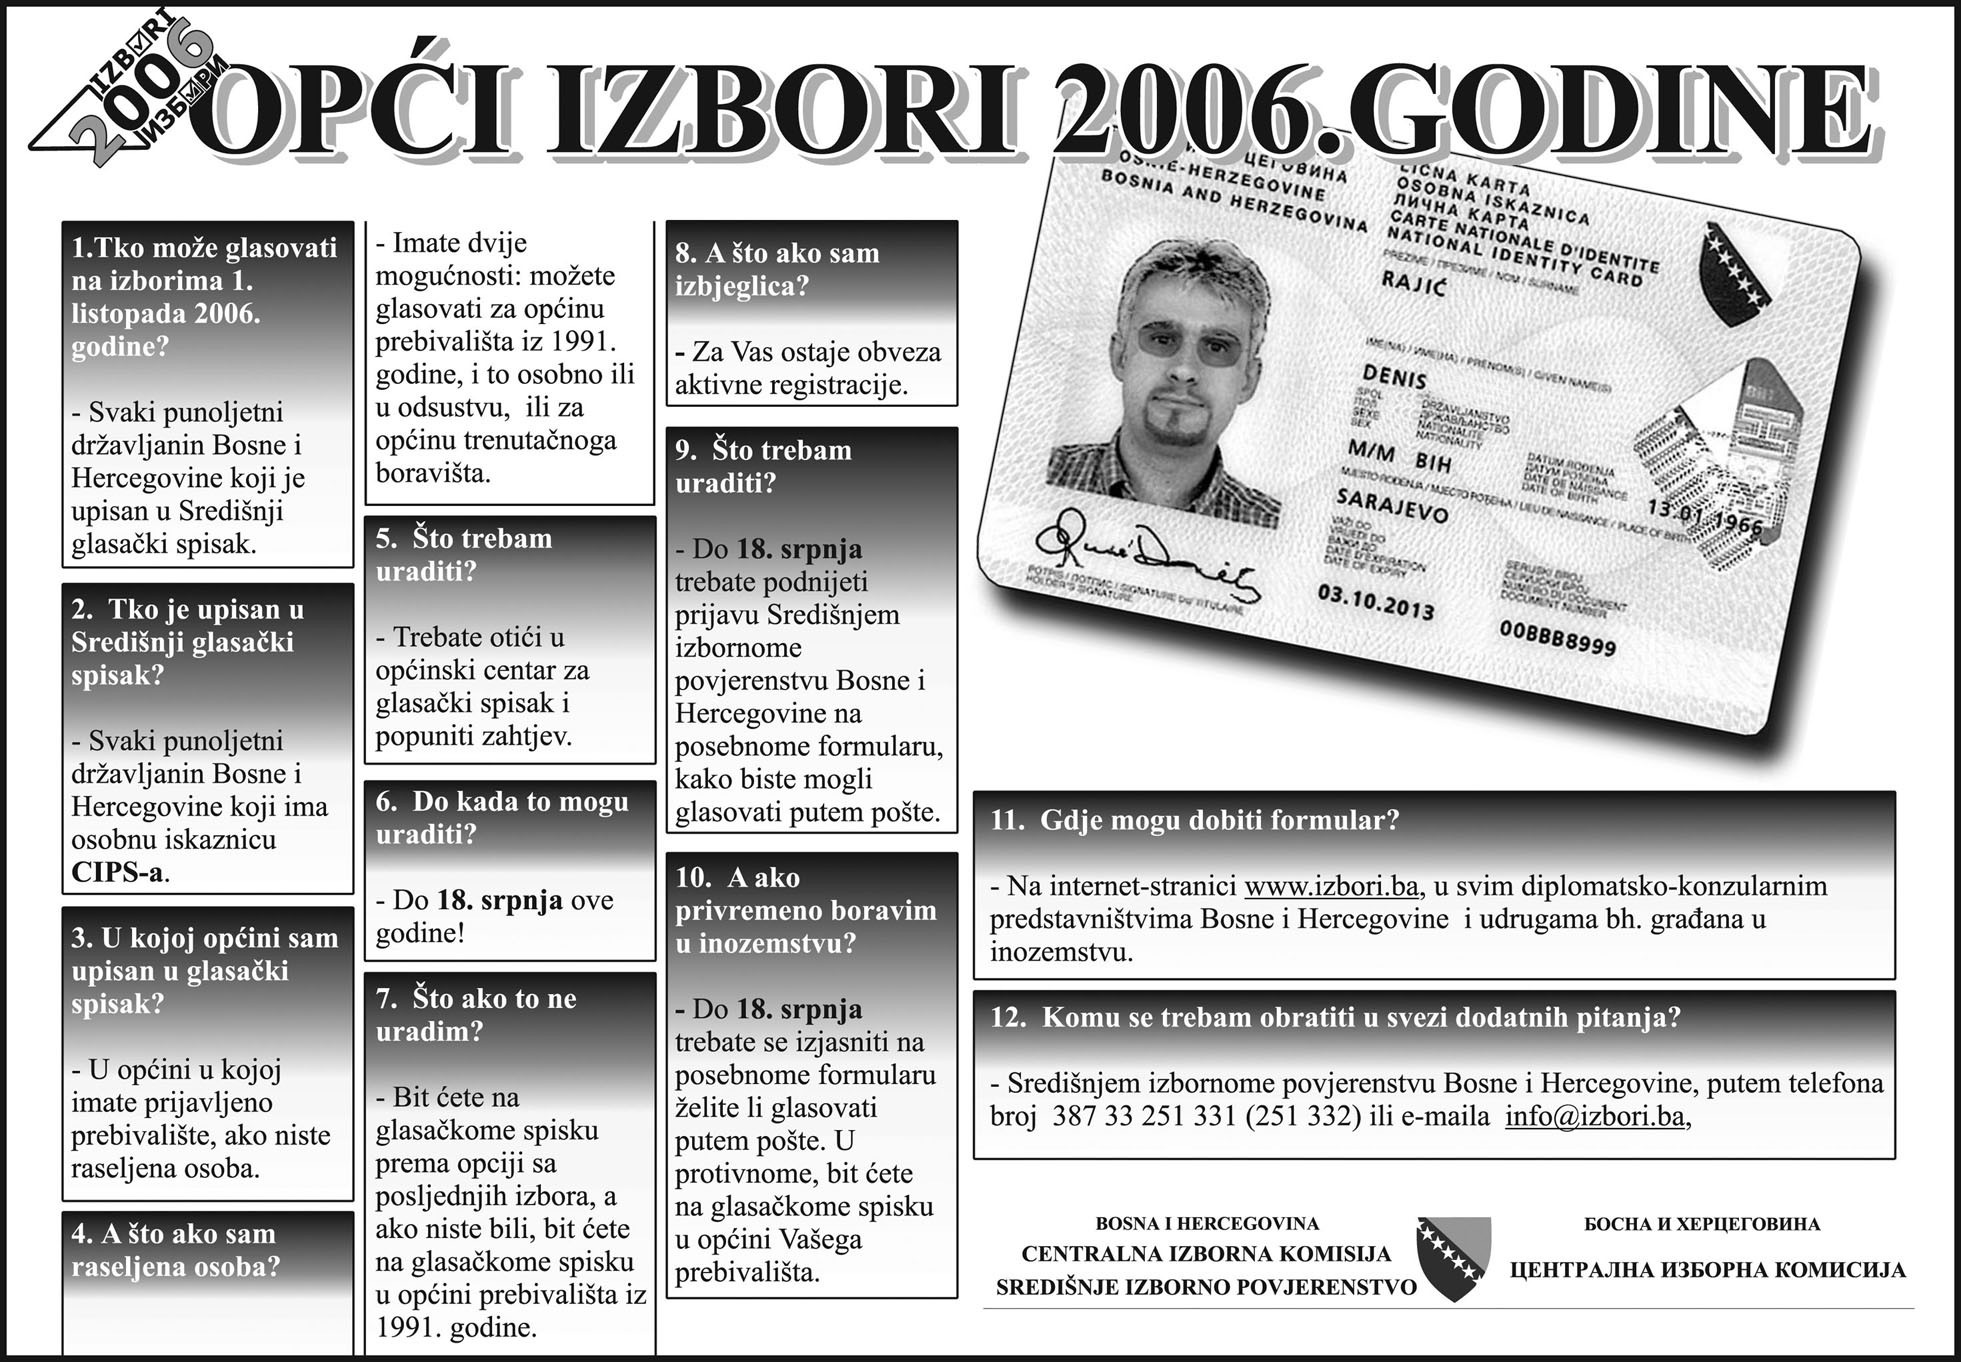 How to vote poster from the general elections of Bosnia and Herzegovina 2006